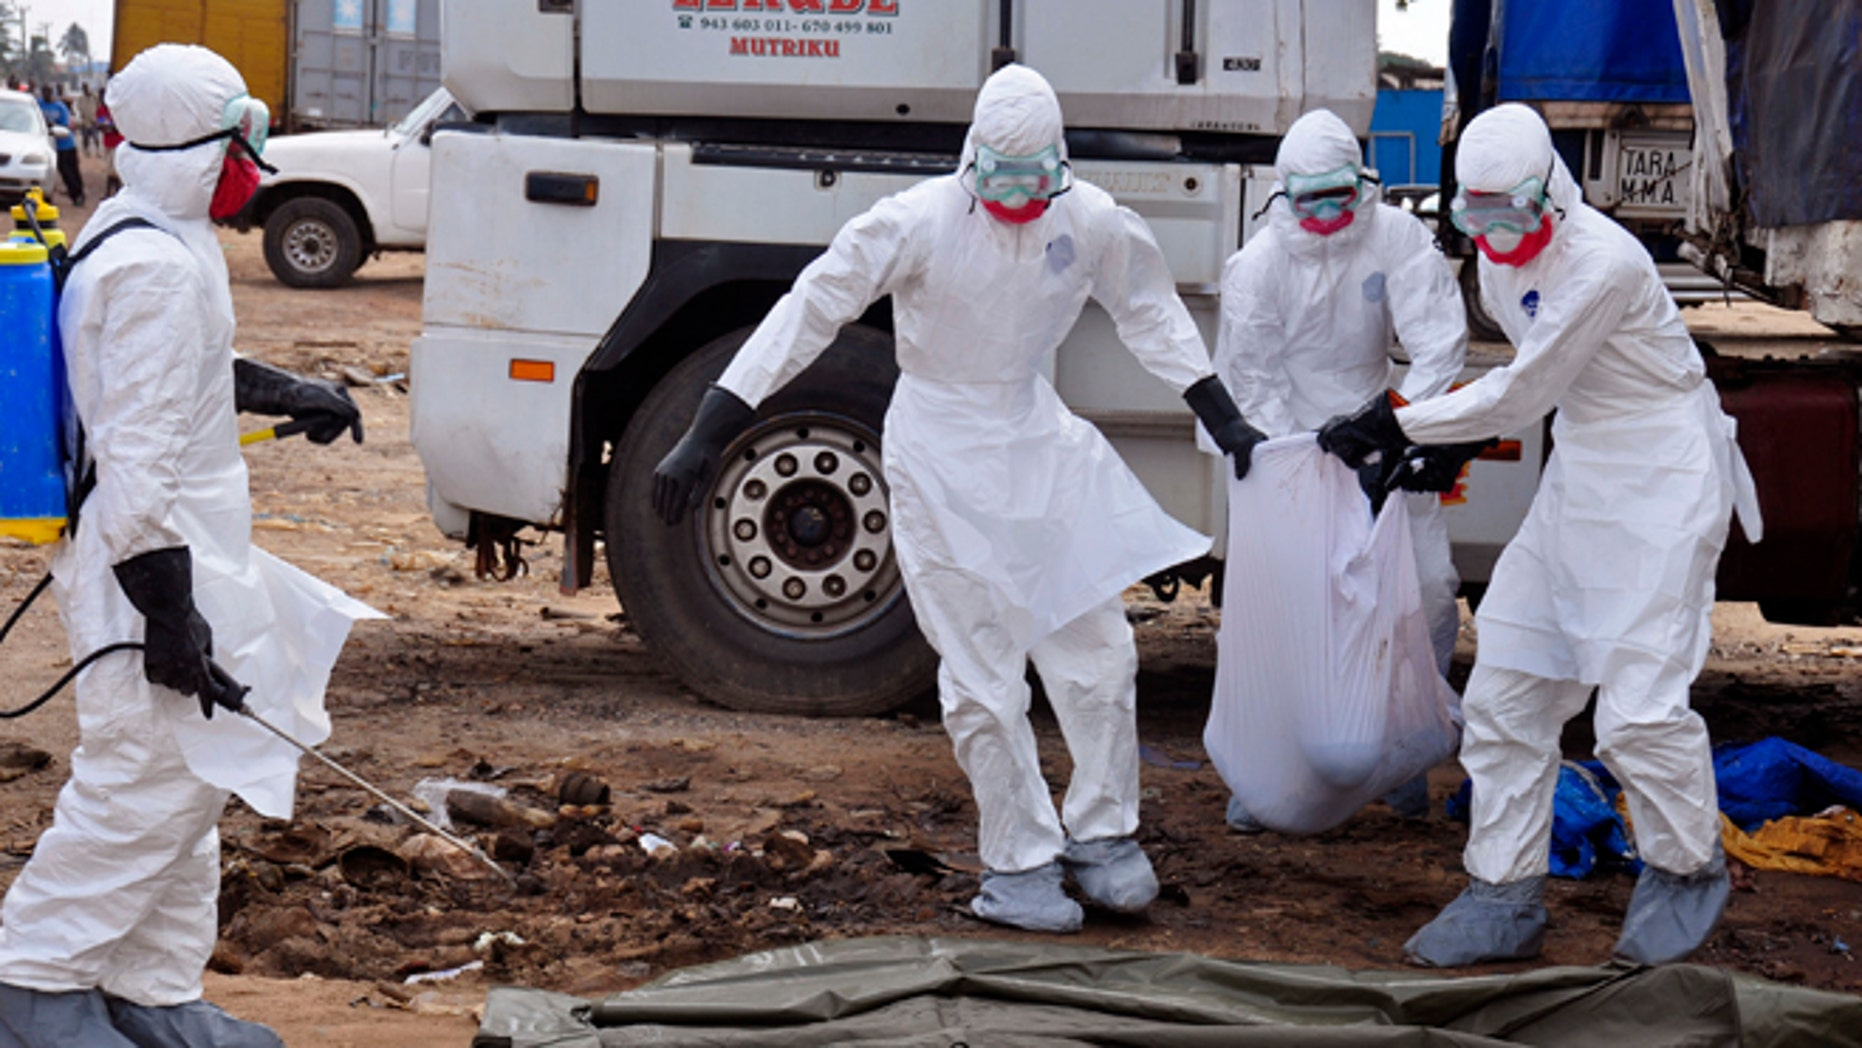 Health workers carry the body of a man found in the street, suspected of dying from the ebola virus,  in the capital city of Monrovia, Liberia, Tuesday, Aug. 12, 2014. The World Health Organization declared its ethical to use untested drugs and vaccines in the ongoing Ebola outbreak in West Africa although the tiny supply of one experimental drug handed out to three people has been depleted and it could be many months until more is available. (AP Photo/Abbas Dulleh)